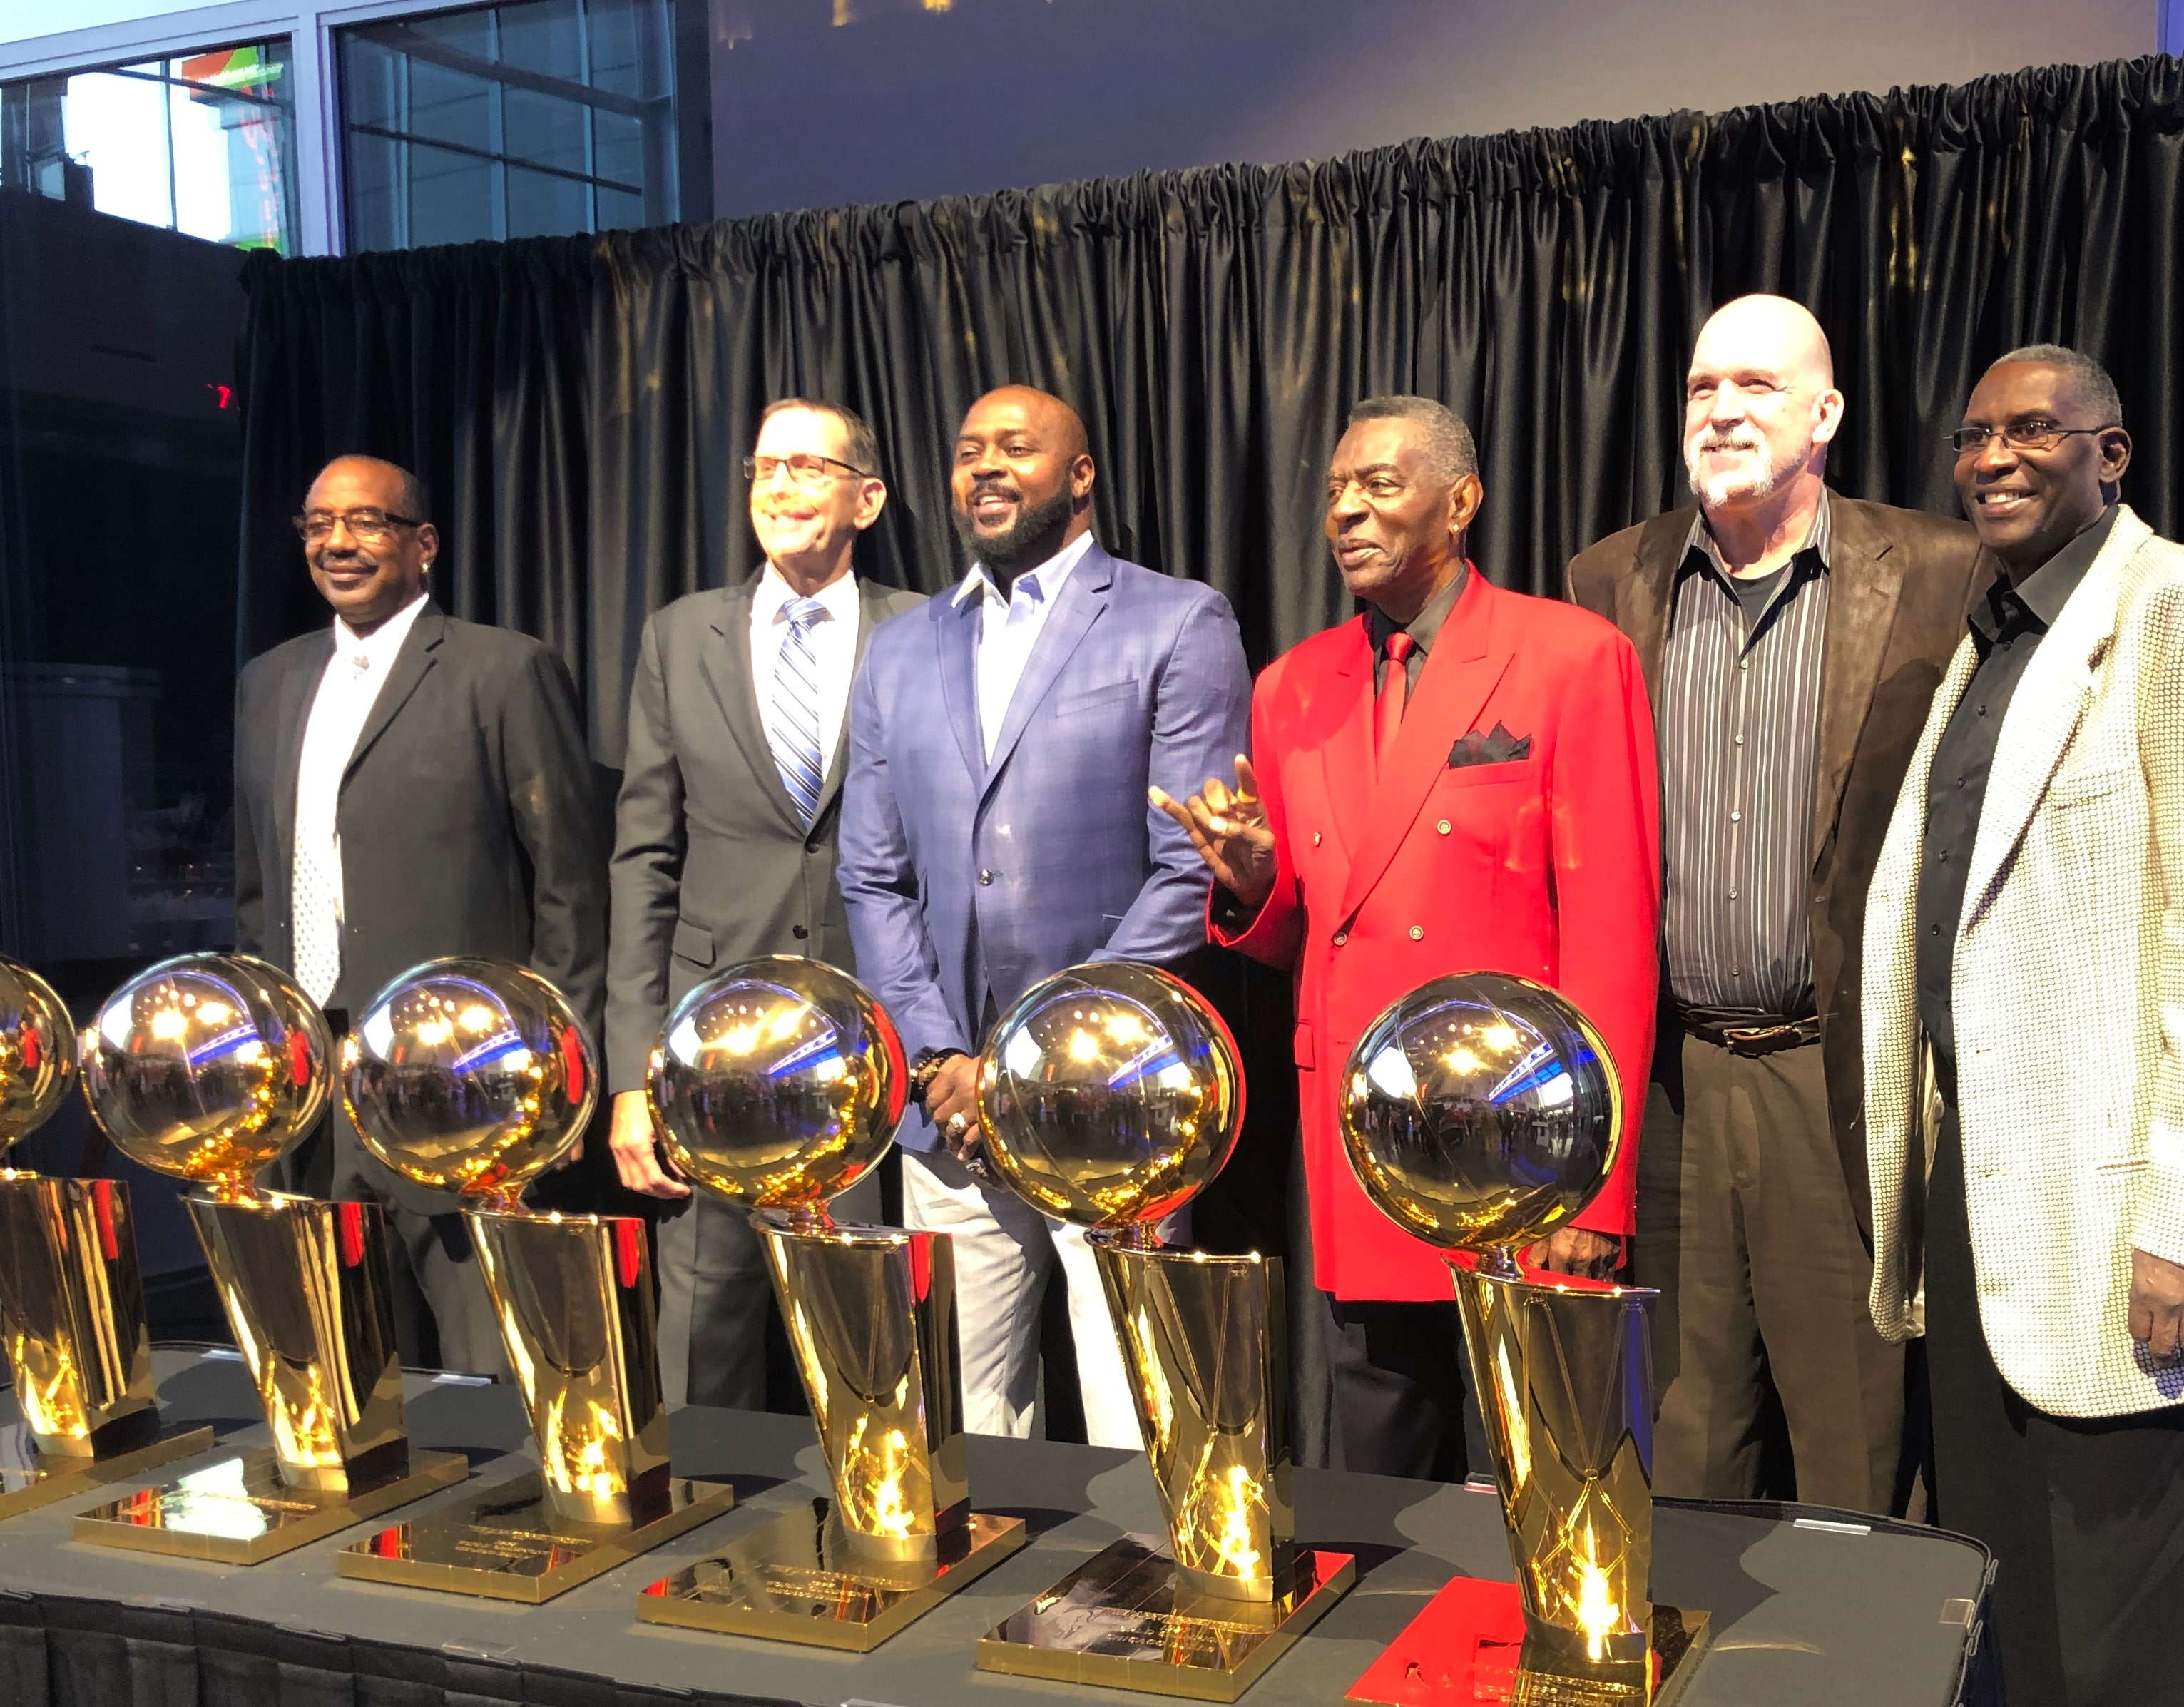 Former Players at the Premium Suite Holders Event in Chicago